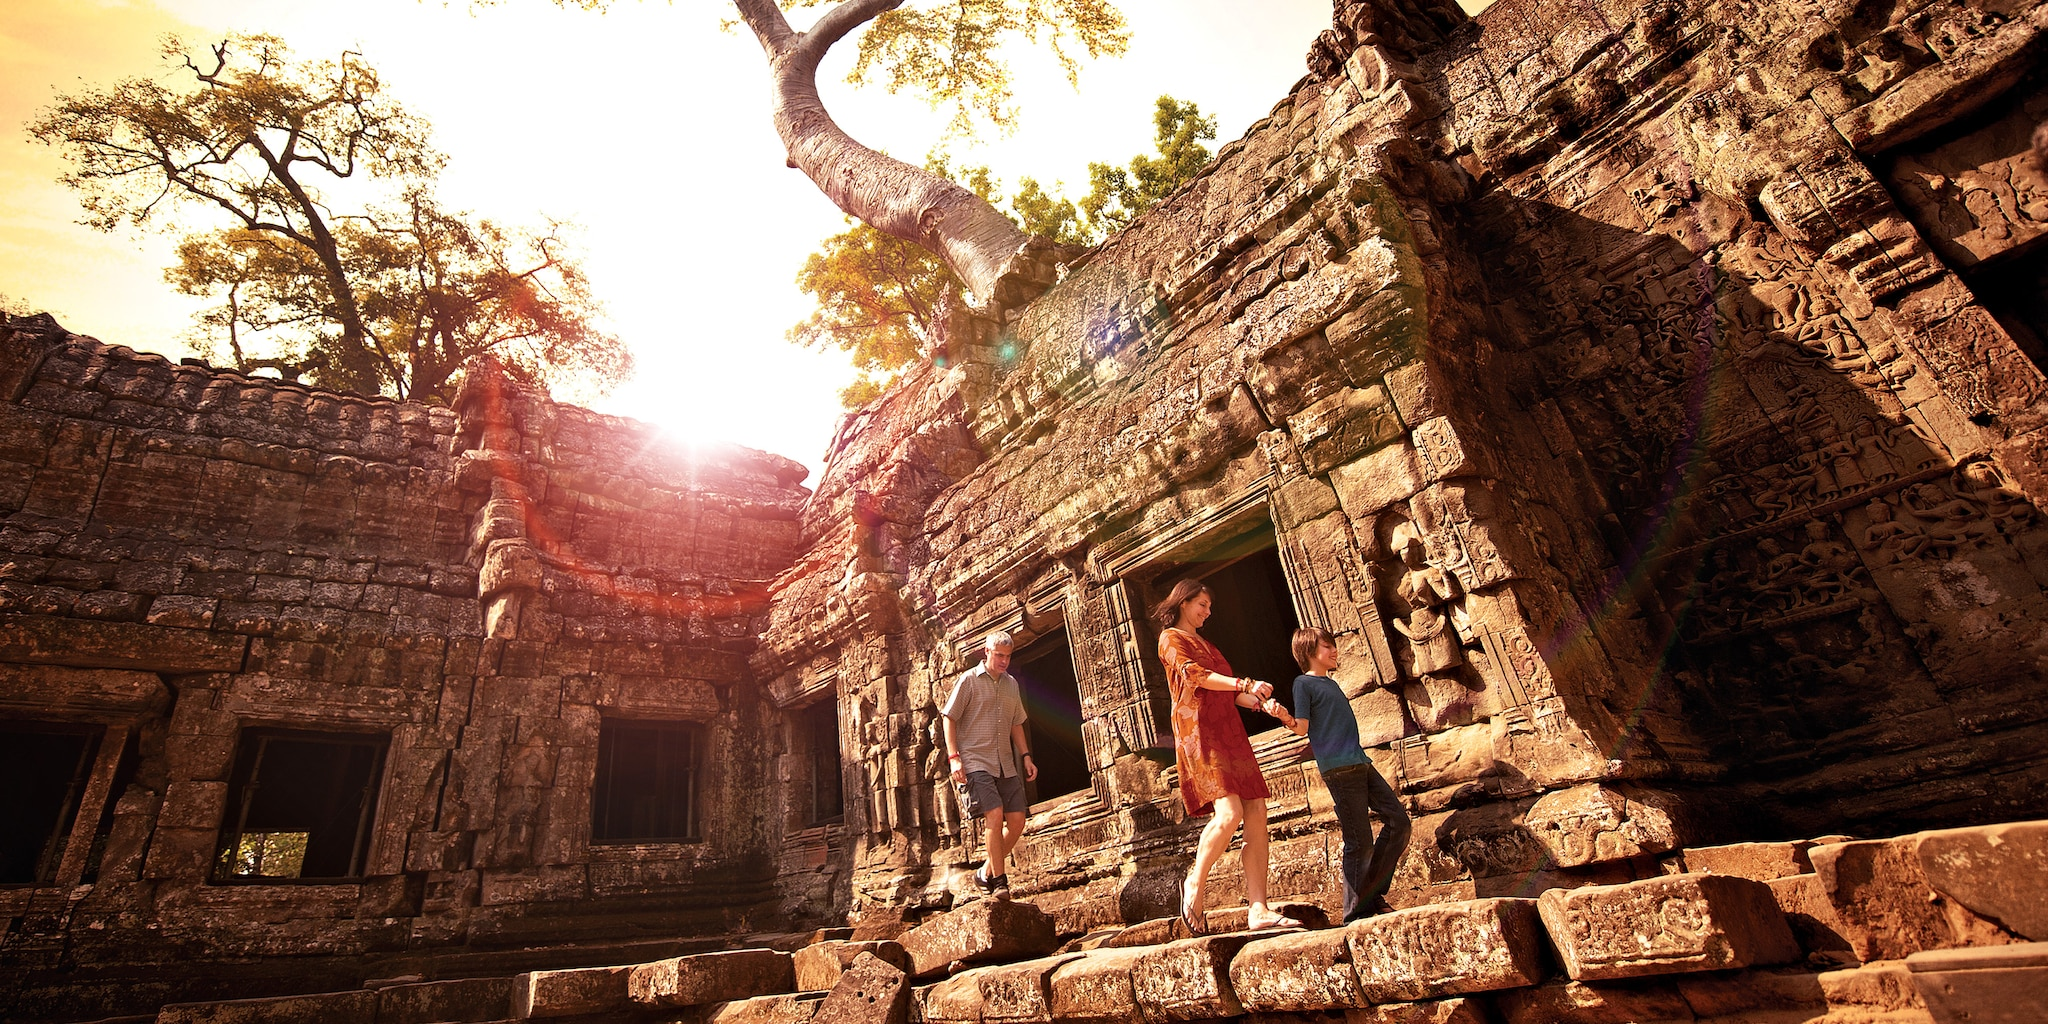 A mom, dad and son explore Angkor Archaeological Park